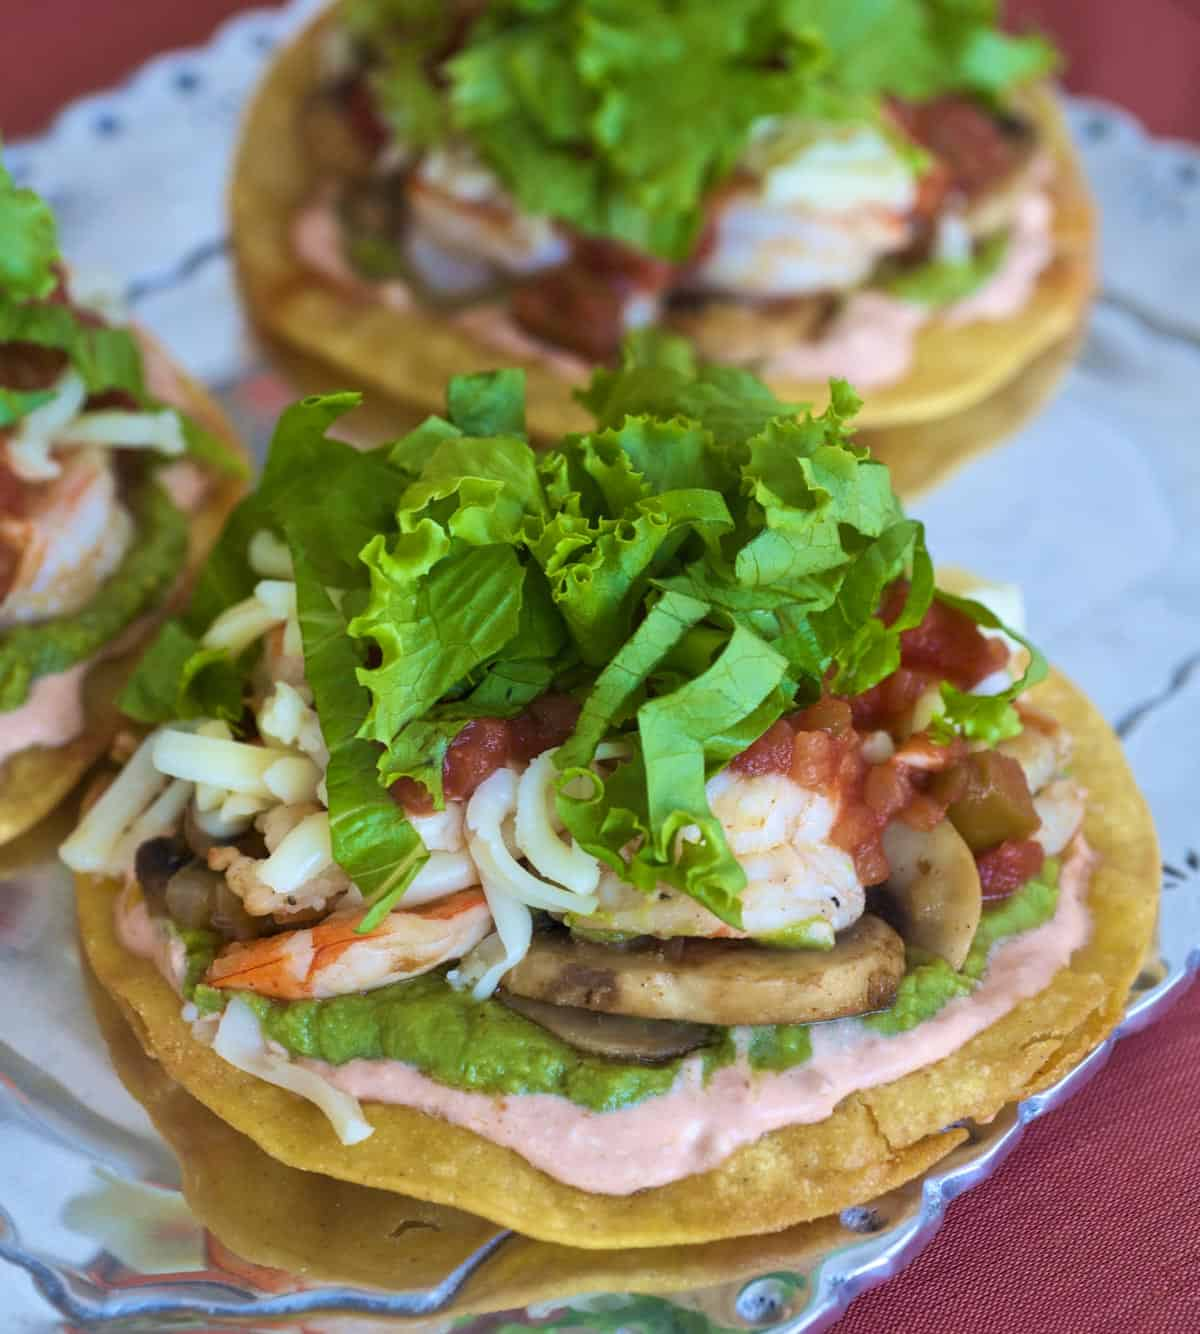 Sauteed shrimp and vegetables layered atop crispy corn tortillas with shredded cheese and lettuce